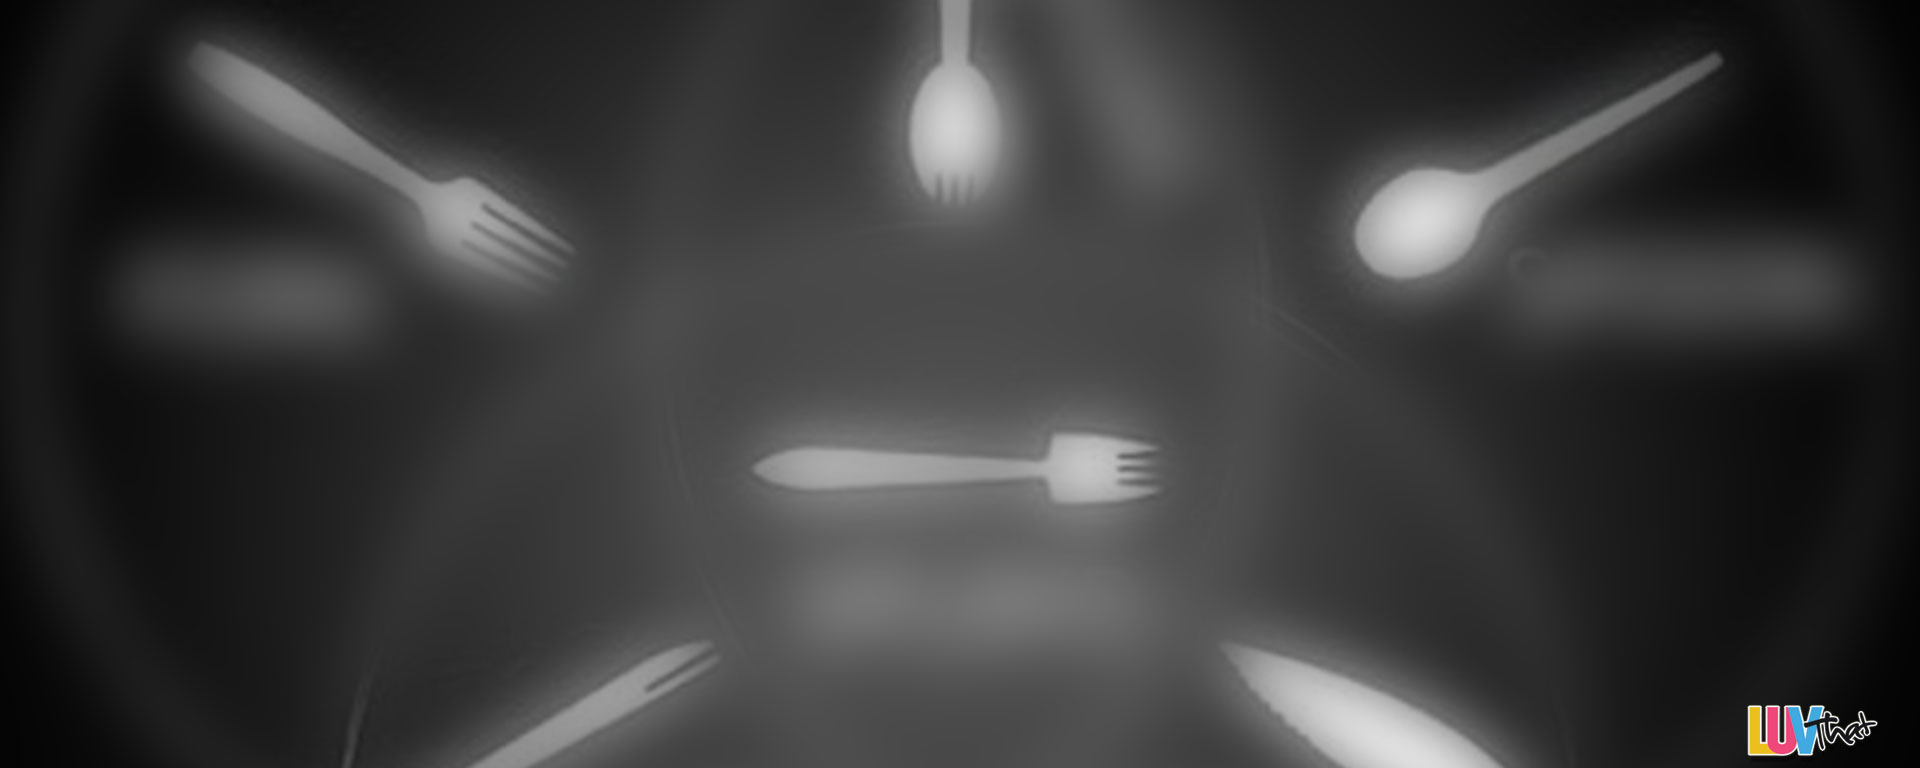 featured unification theory of cutlery and silverware